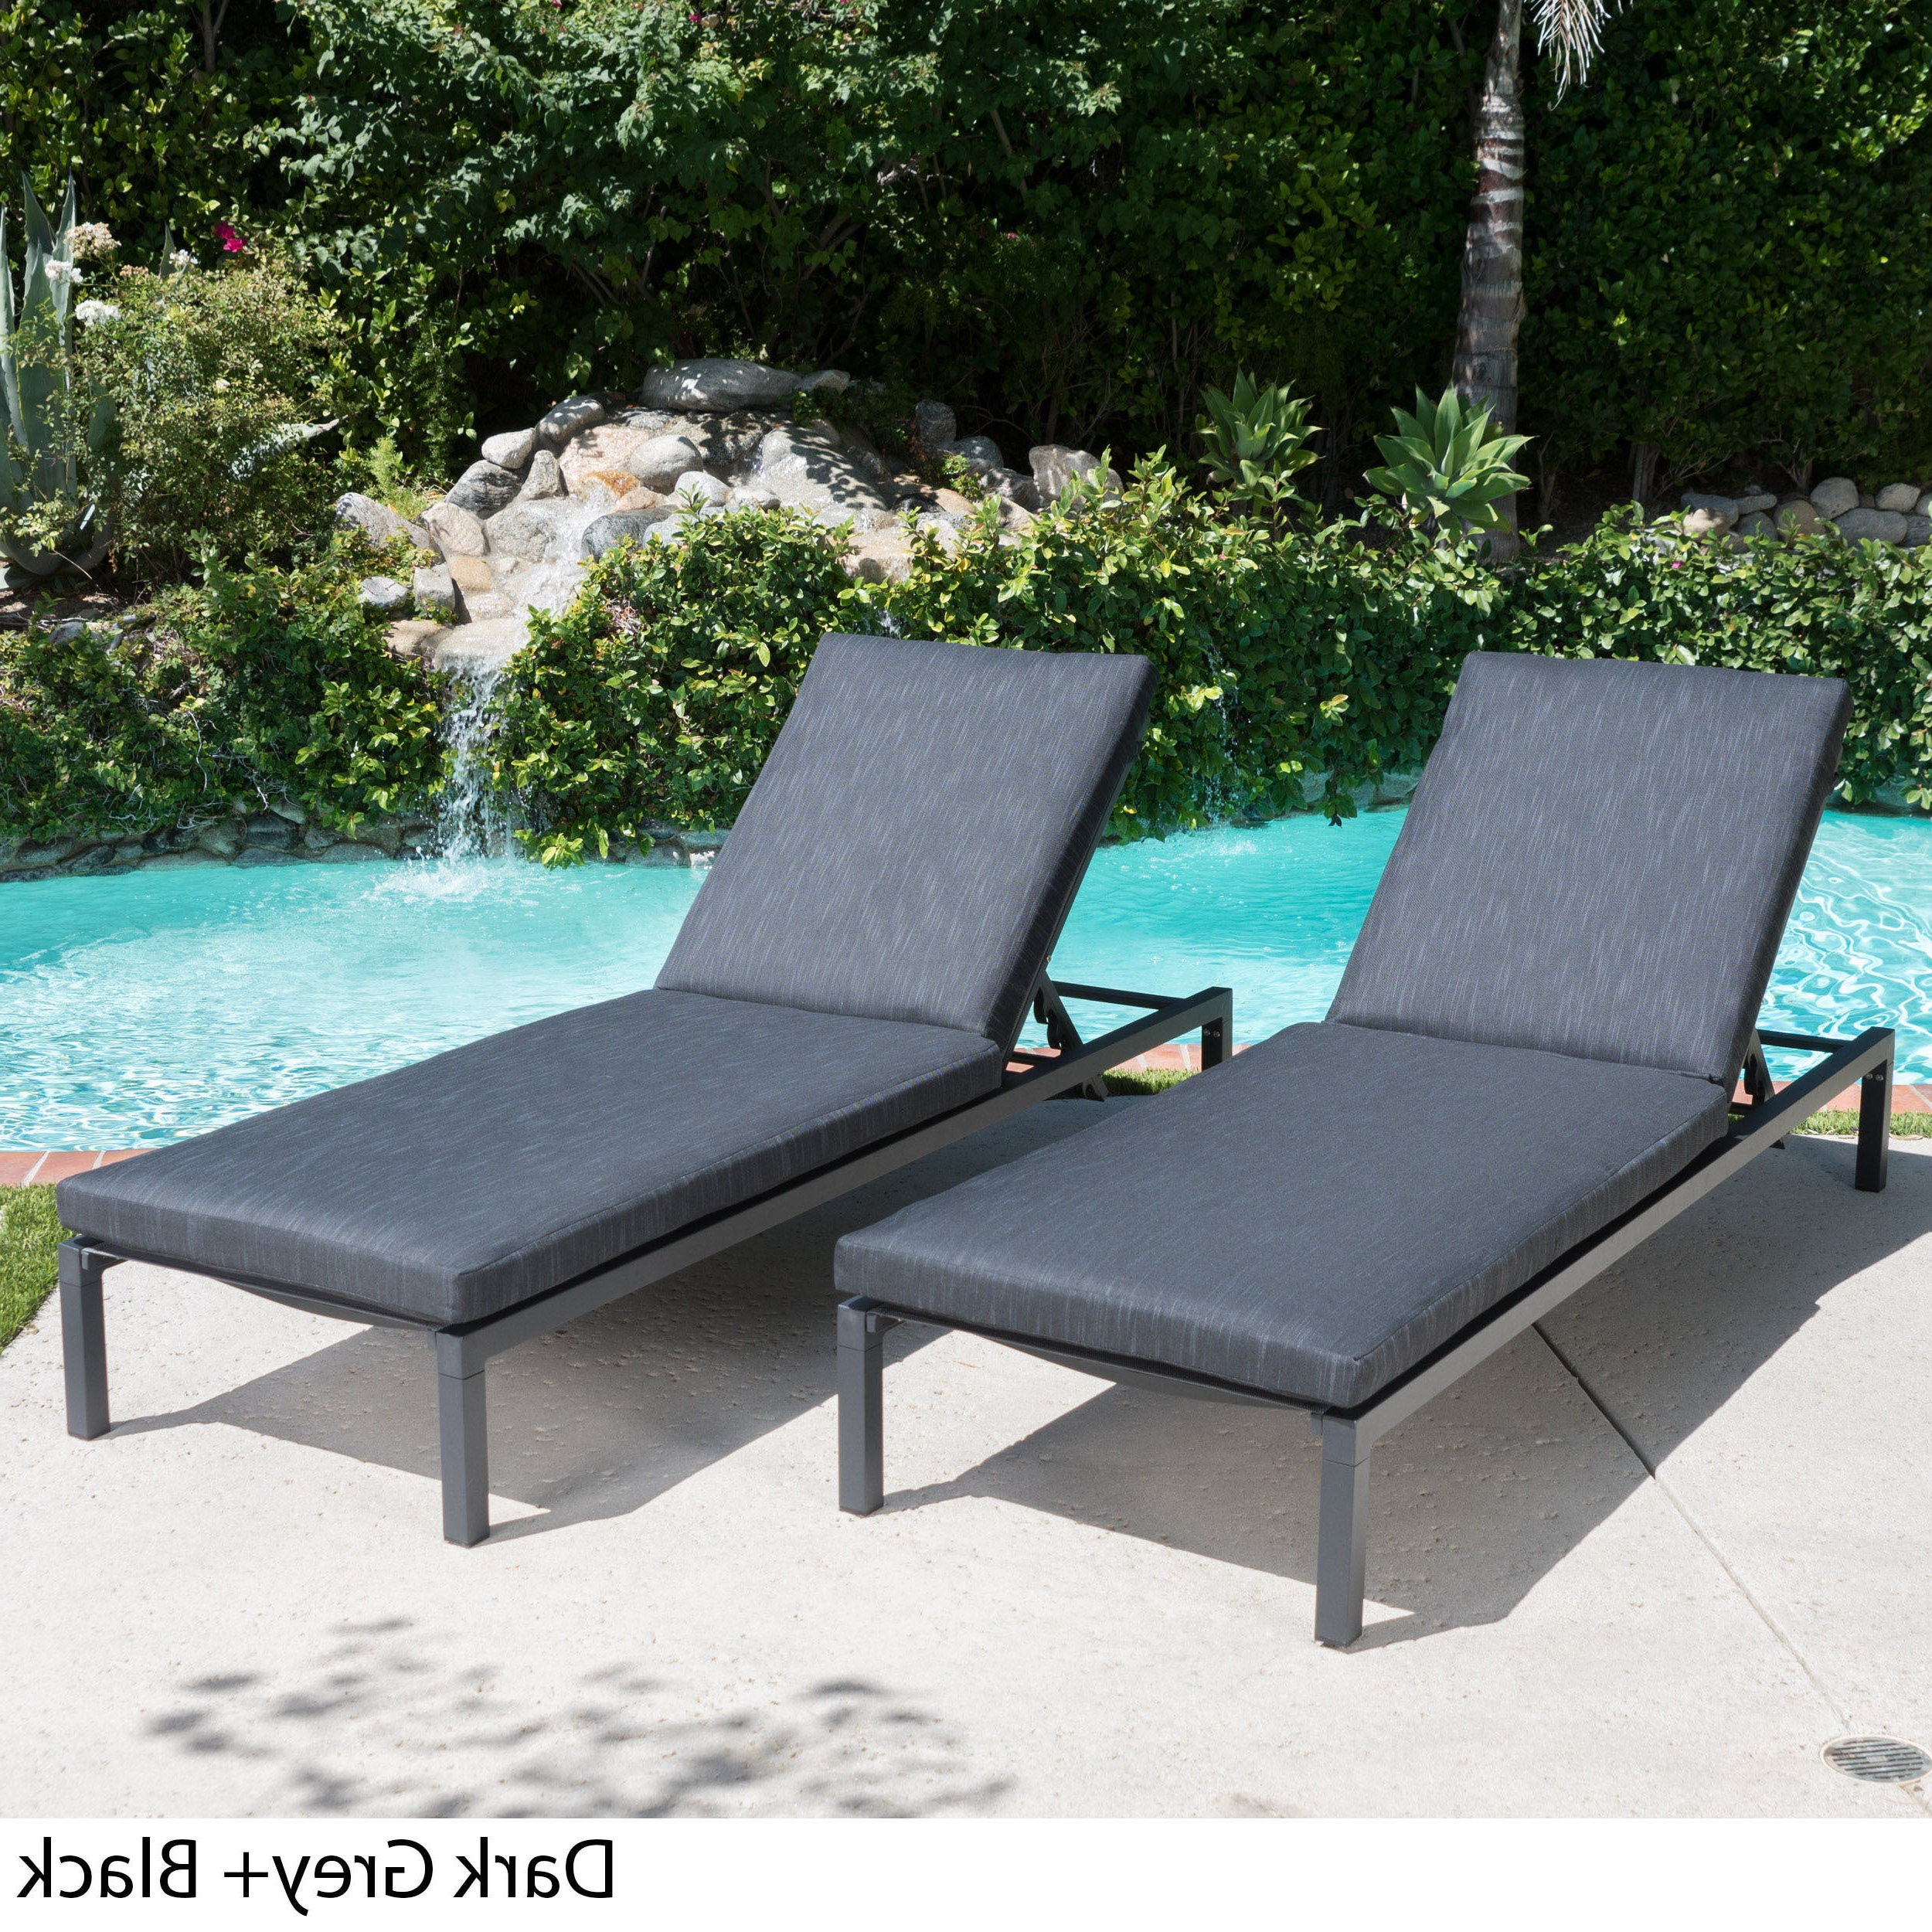 Newest Cape Coral Outdoor Chaise Lounges With Cushion In Navan Outdoor Aluminum Chaise Lounge With Cushion (set Of 2)christopher Knight Home (View 12 of 25)